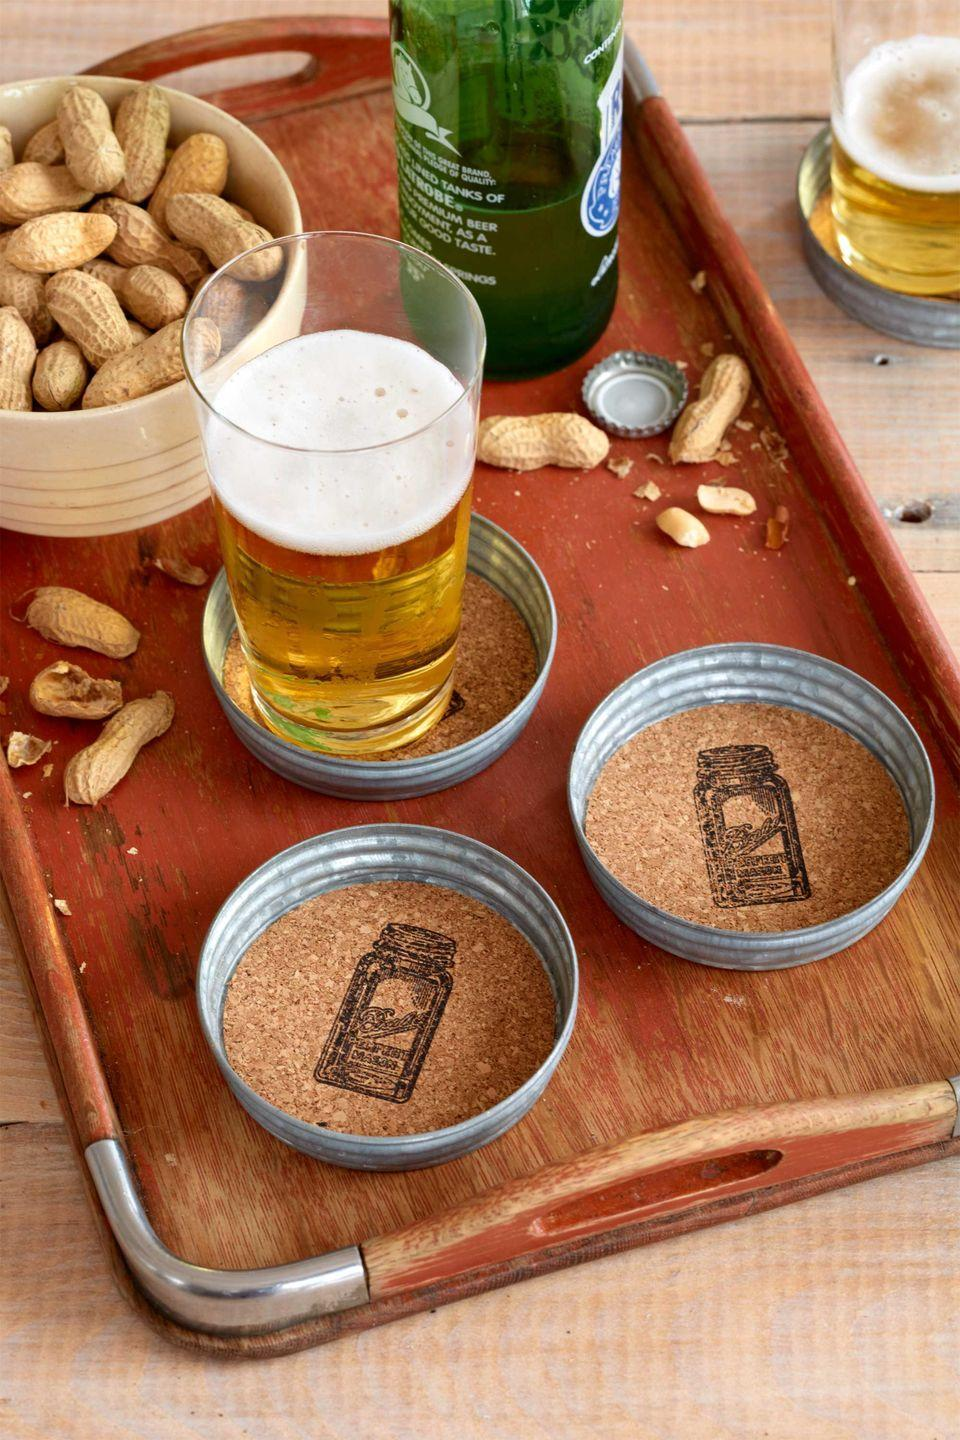 """<p>Give Dad a stylish-looking spot to rest his beer bottle while he watches the big game.</p><p><strong>Step 1:</strong> First, gather four lids: We used weathered zinc ones.</p><p><strong>Step 2:</strong> Place your lids upside down on top of <a href=""""https://www.amazon.com/Tact-Natural-04F-C6421-06AZ-Self-Adhesive-Drawer/dp/B000WEPD6U/?tag=syn-yahoo-20&ascsubtag=%5Bartid%7C10050.g.1171%5Bsrc%7Cyahoo-us"""" rel=""""nofollow noopener"""" target=""""_blank"""" data-ylk=""""slk:adhesive cork shelf liner"""" class=""""link rapid-noclick-resp"""">adhesive cork shelf liner</a><em>.</em> Trace around the lids with a pen, then cut out the circles.</p><p><strong>Step 3:</strong> Stamp an image into the center of each cork circle—ours references the classic Ball jar—using solvent-based ink, which won't smear when wet<em>. </em></p><p><strong>Step 4:</strong> Let the ink dry at least one minute, then peel the backing off the cork circles, and affix within the lids.</p><p><a class=""""link rapid-noclick-resp"""" href=""""https://www.amazon.com/KooK-Mason-Regular-Secure-Silver/dp/B079F511CS/?tag=syn-yahoo-20&ascsubtag=%5Bartid%7C10050.g.1171%5Bsrc%7Cyahoo-us"""" rel=""""nofollow noopener"""" target=""""_blank"""" data-ylk=""""slk:SHOP METAL LIDS"""">SHOP METAL LIDS</a></p>"""